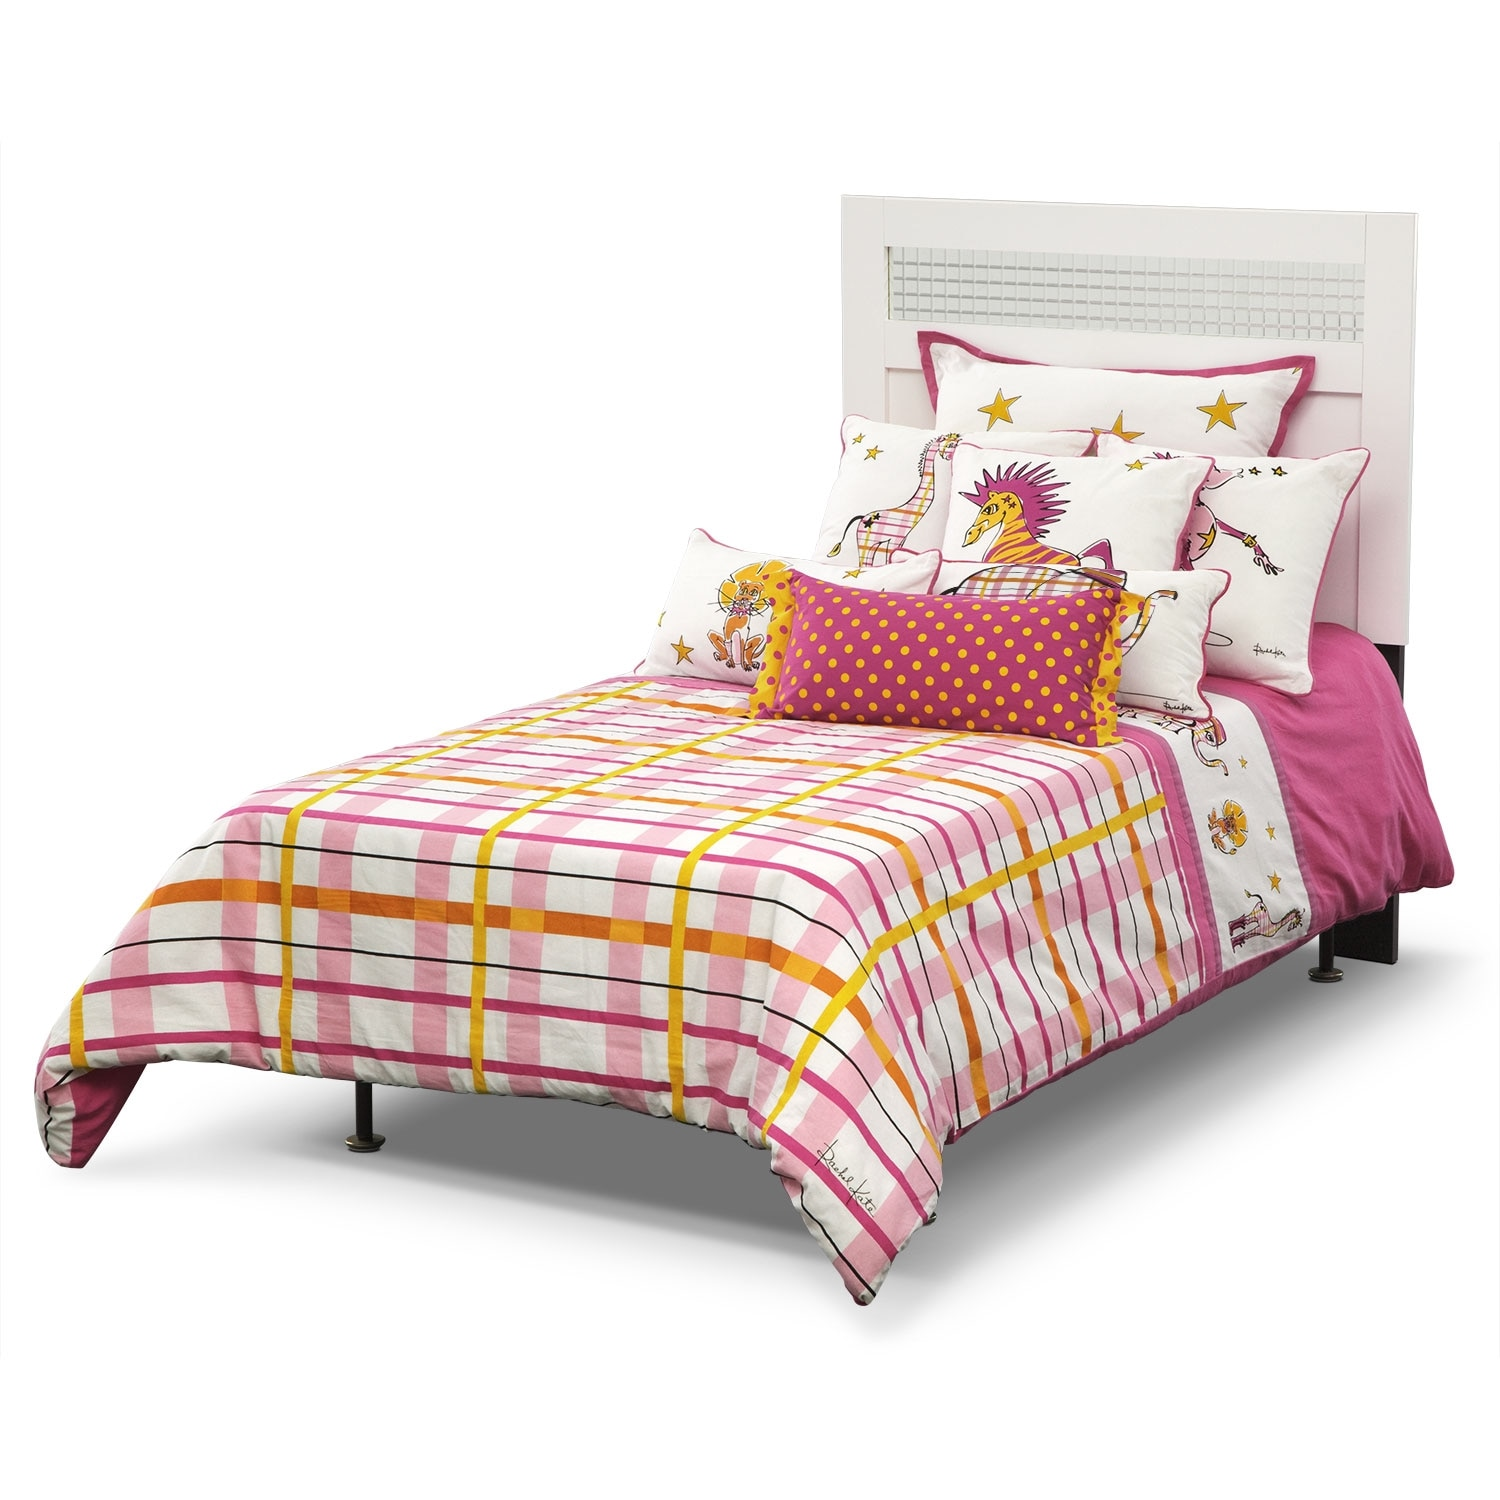 Punky Girl Twin Bedding Set